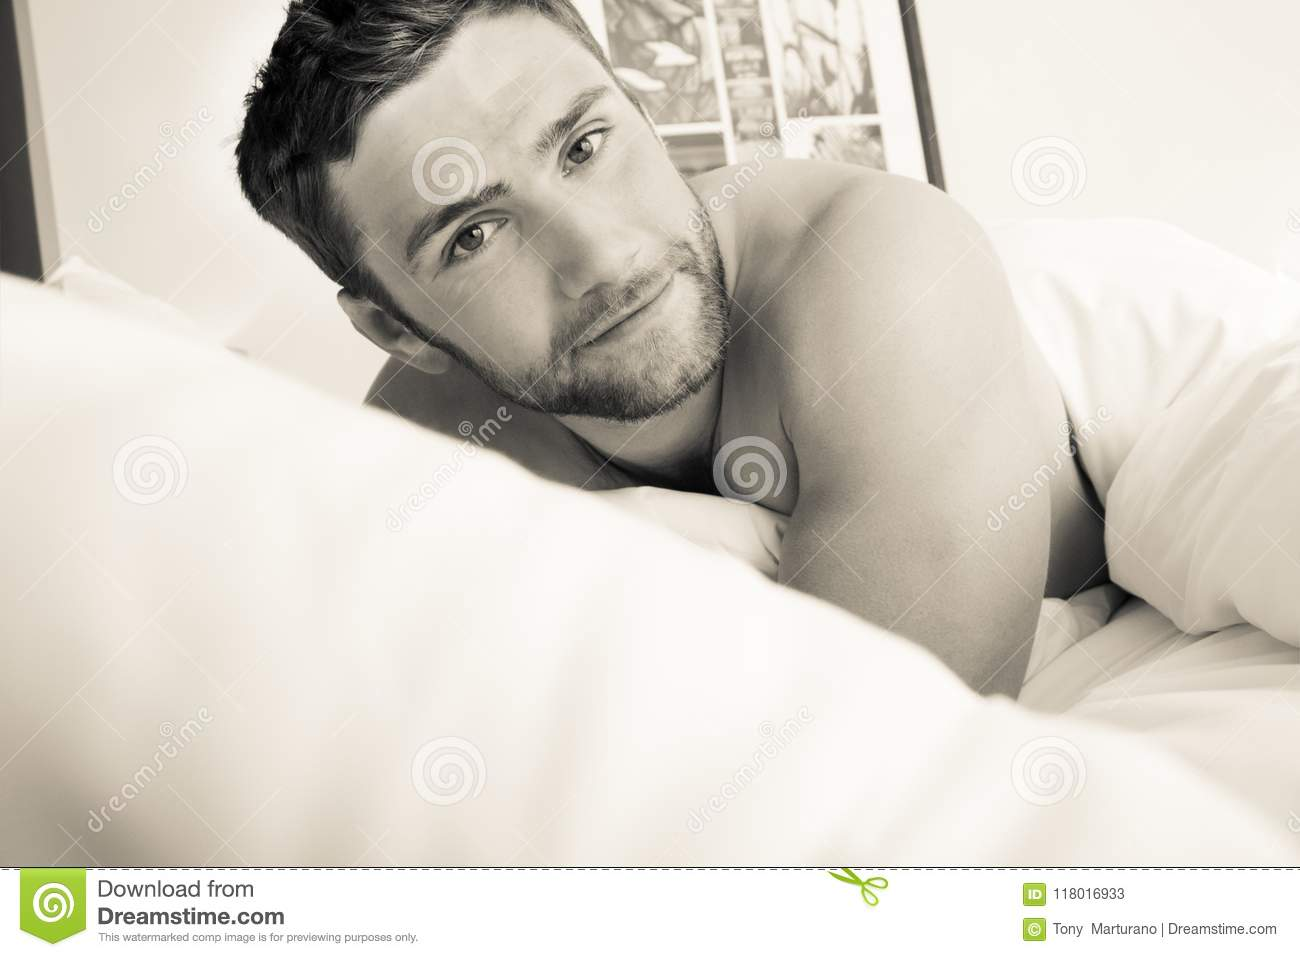 Shirtless hunky man with beard lies naked in bed